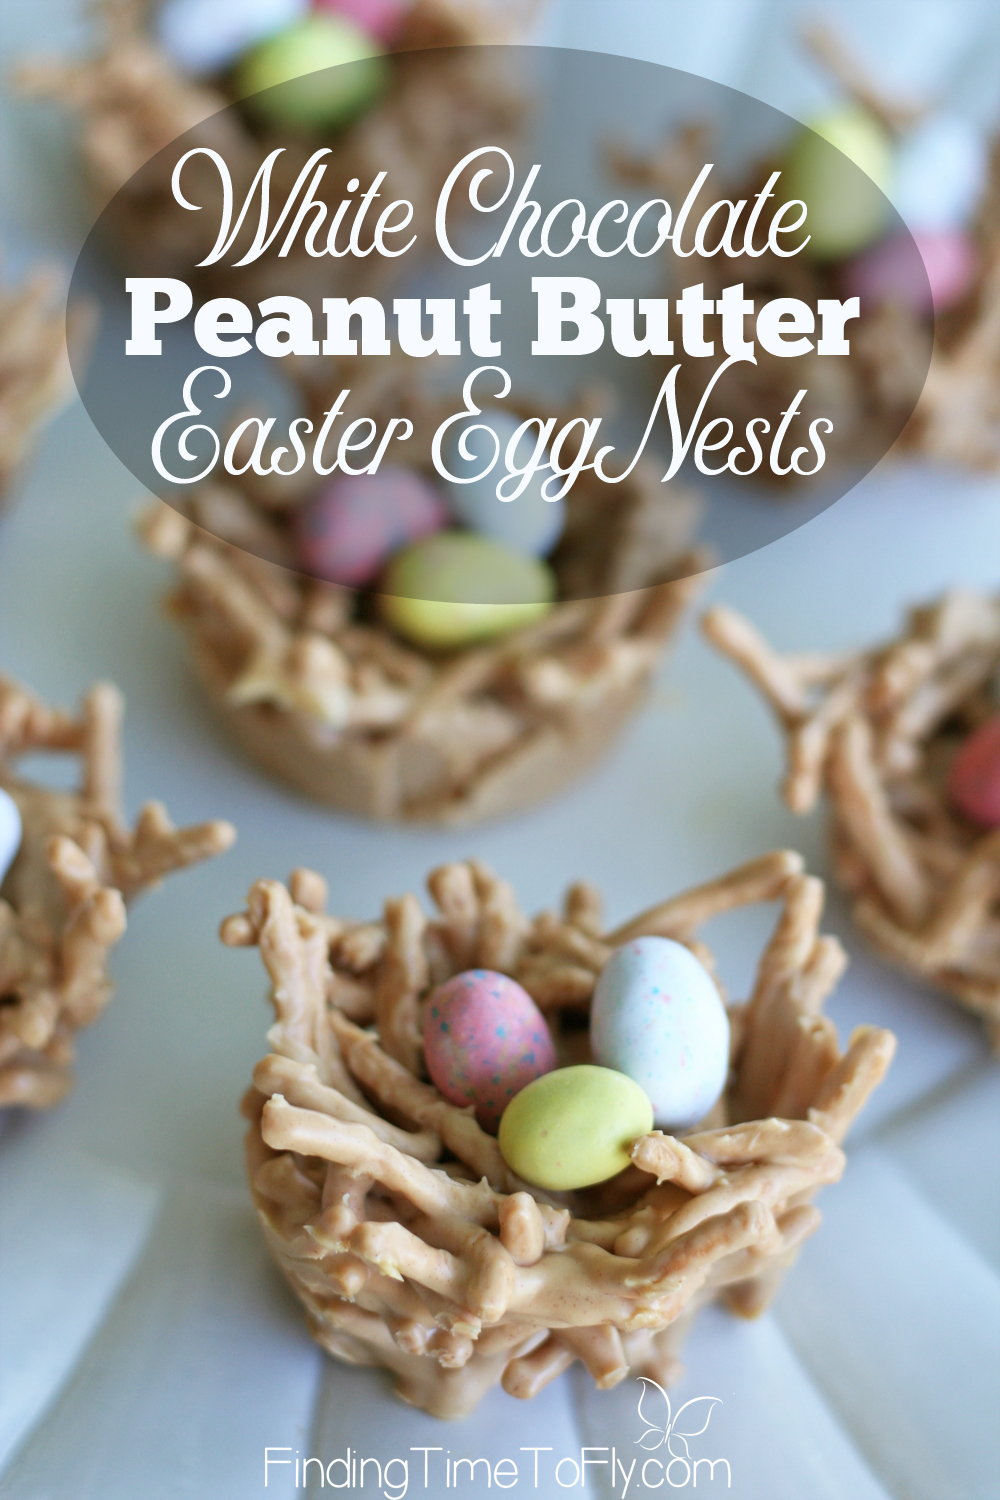 What a great treat to make for Easter! Butterscotch haystacks are amazing. I bet chocolate peanut butter haystacks are great, too. Love the idea of making them into Easter egg nests!